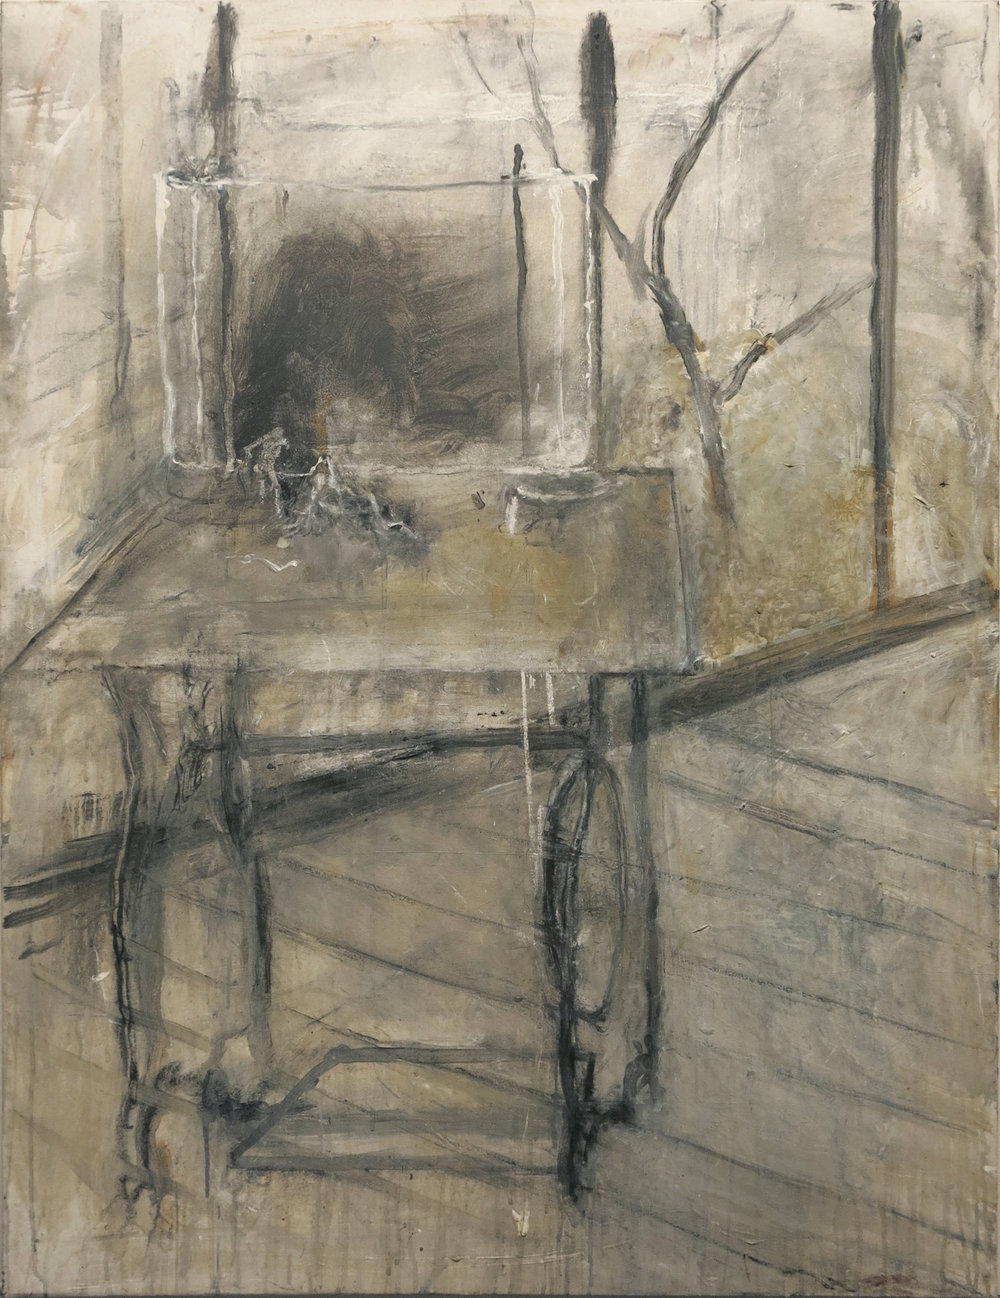 June Leaf,  Treadle Machine with Tree,  2013-2014, acrylic and chalk on canvas, 28h x 36w in.